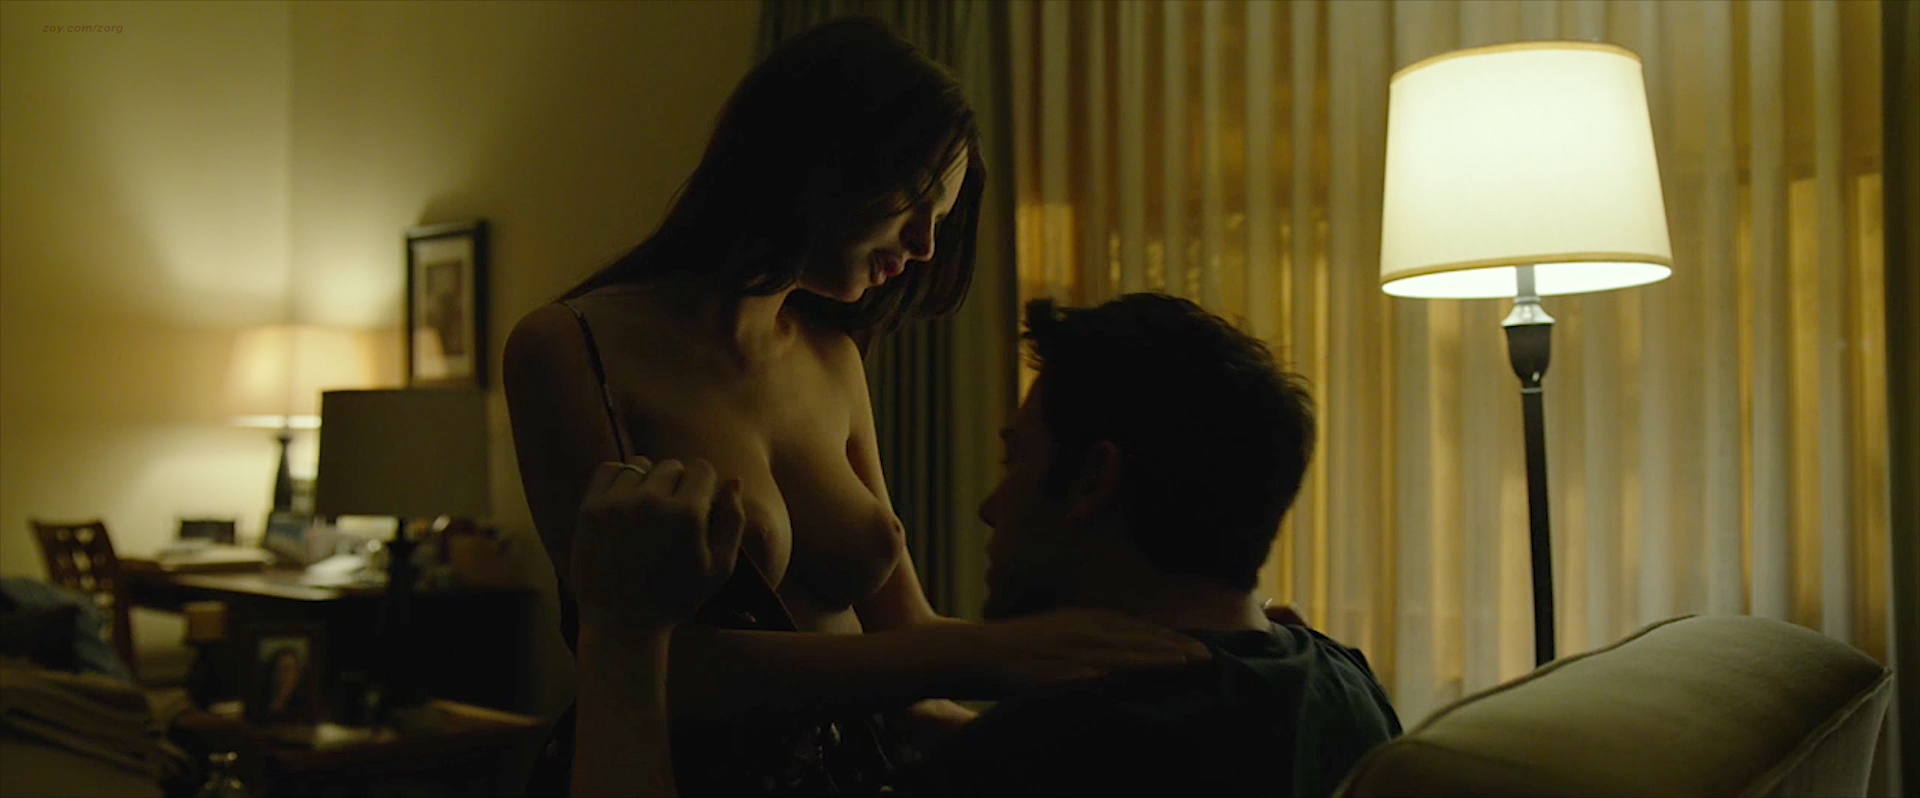 Rosamund Pike nude side boob and sex and Emily Ratajkowski nude topless and sex - Gone Girl (2014) WEB-DL hd1080p (13)